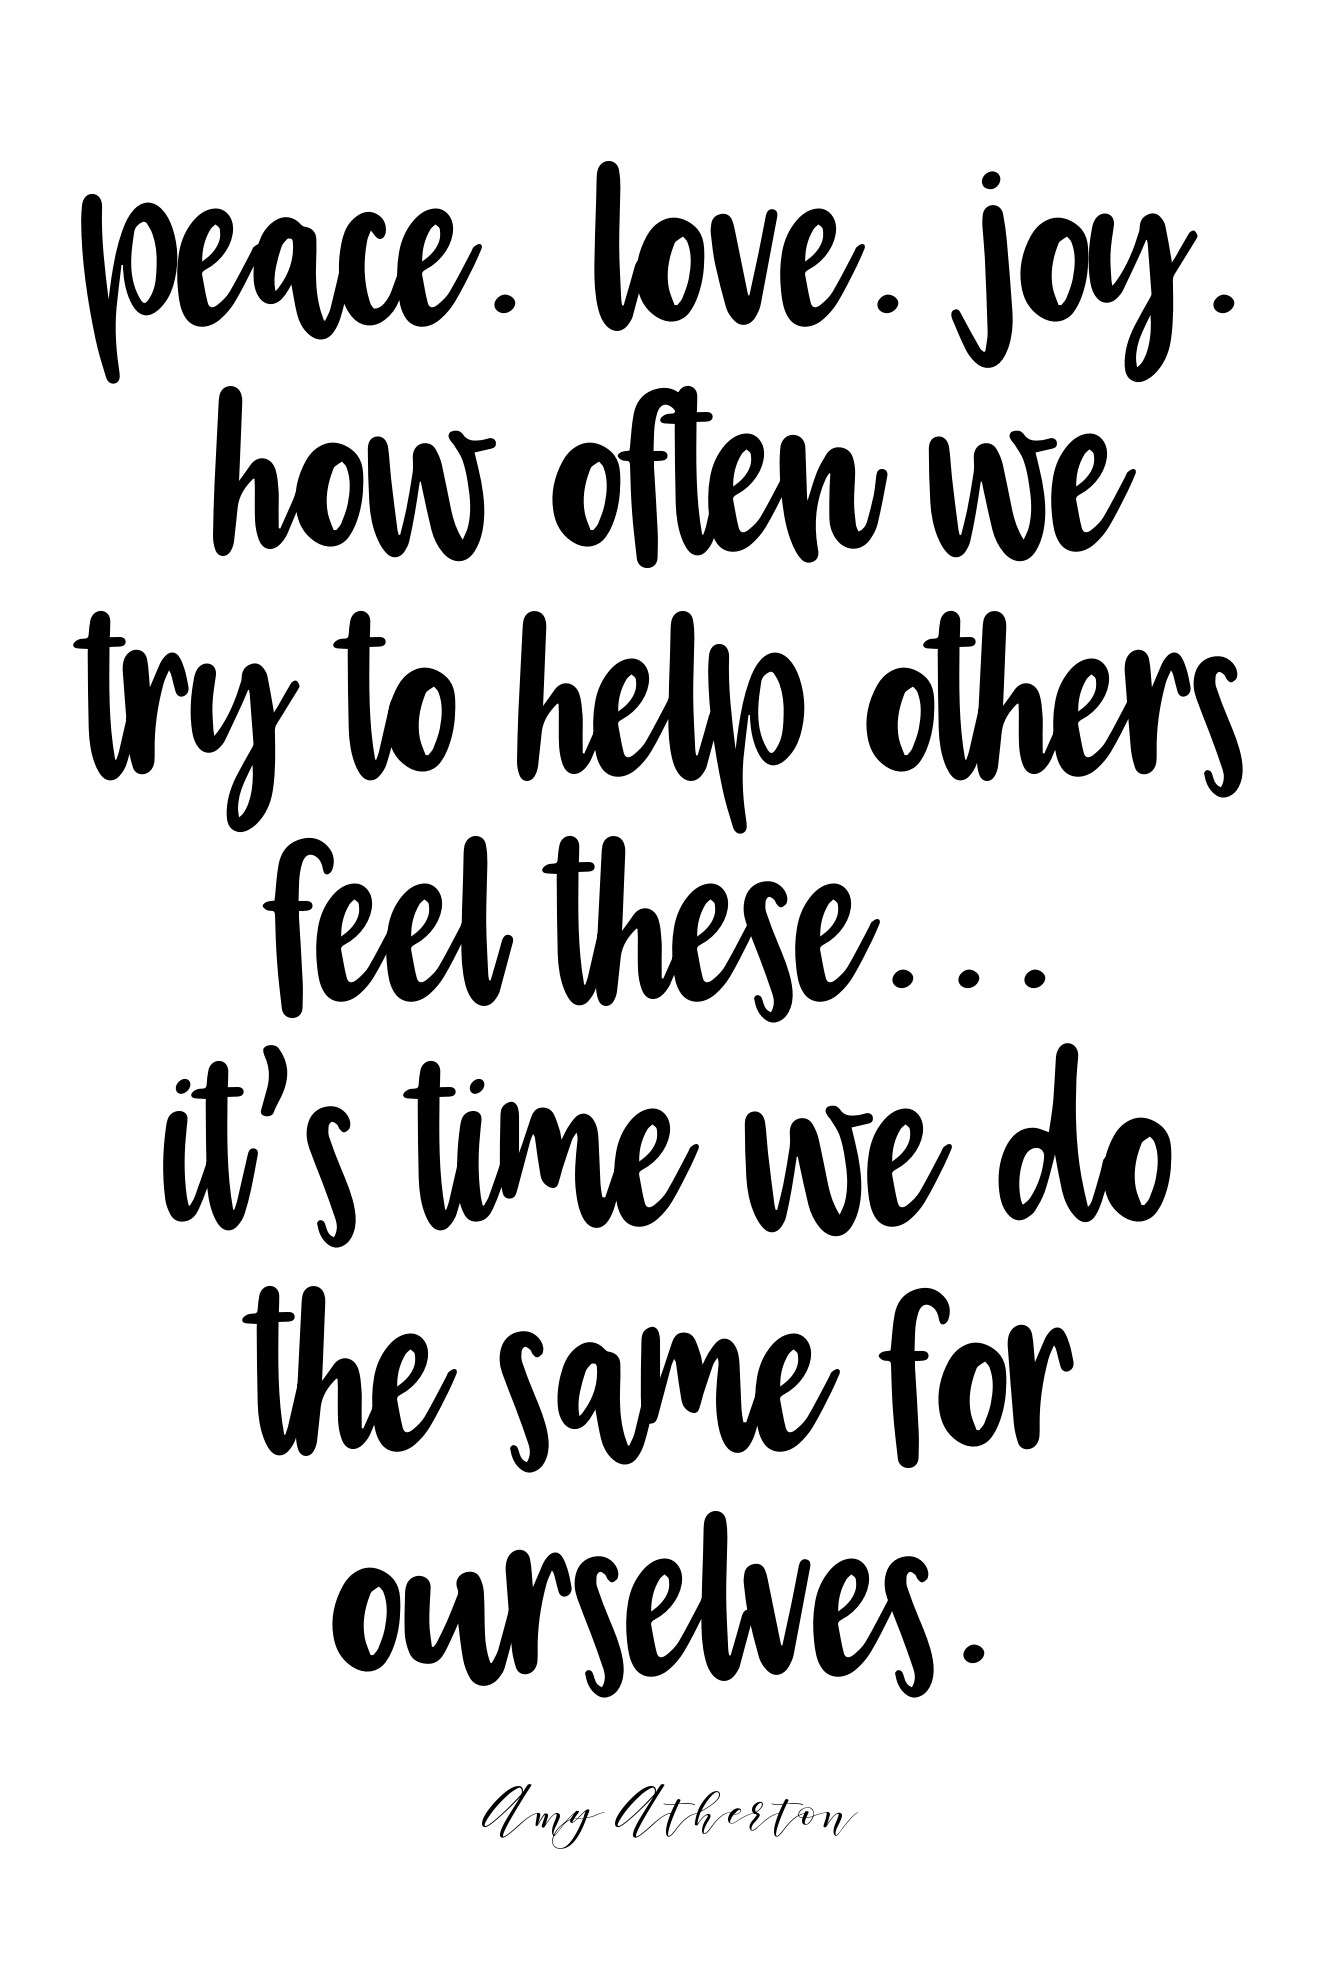 Peace. Love. Joy. How often we try to help others feel these... It's time we do the same for ourselves. @amybakeshealthy